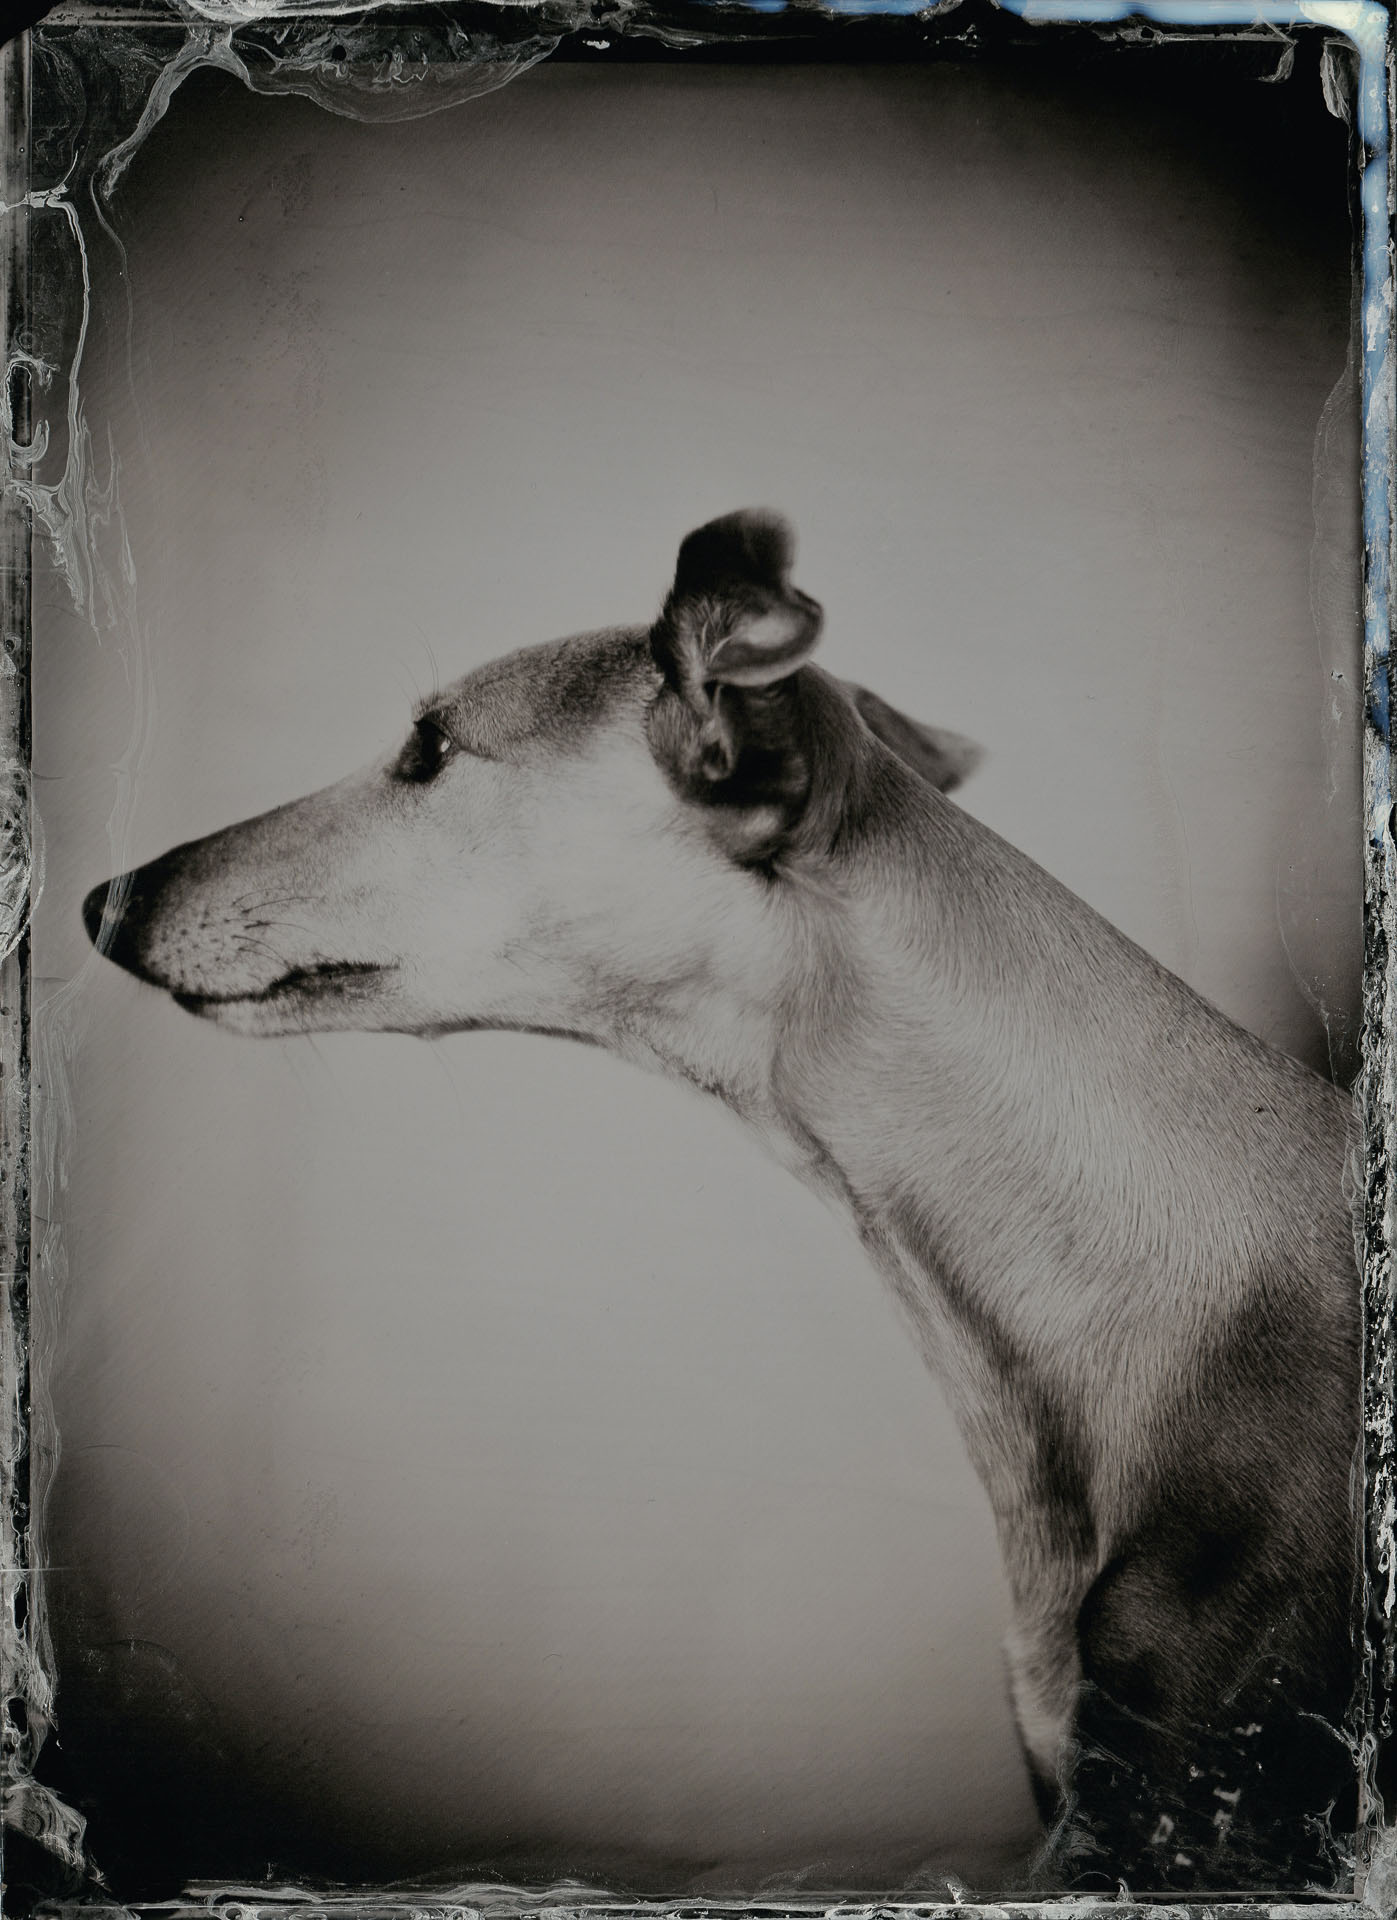 Olive (The Whippet) - By:Rikard Österlund  www.rikard.co.uk